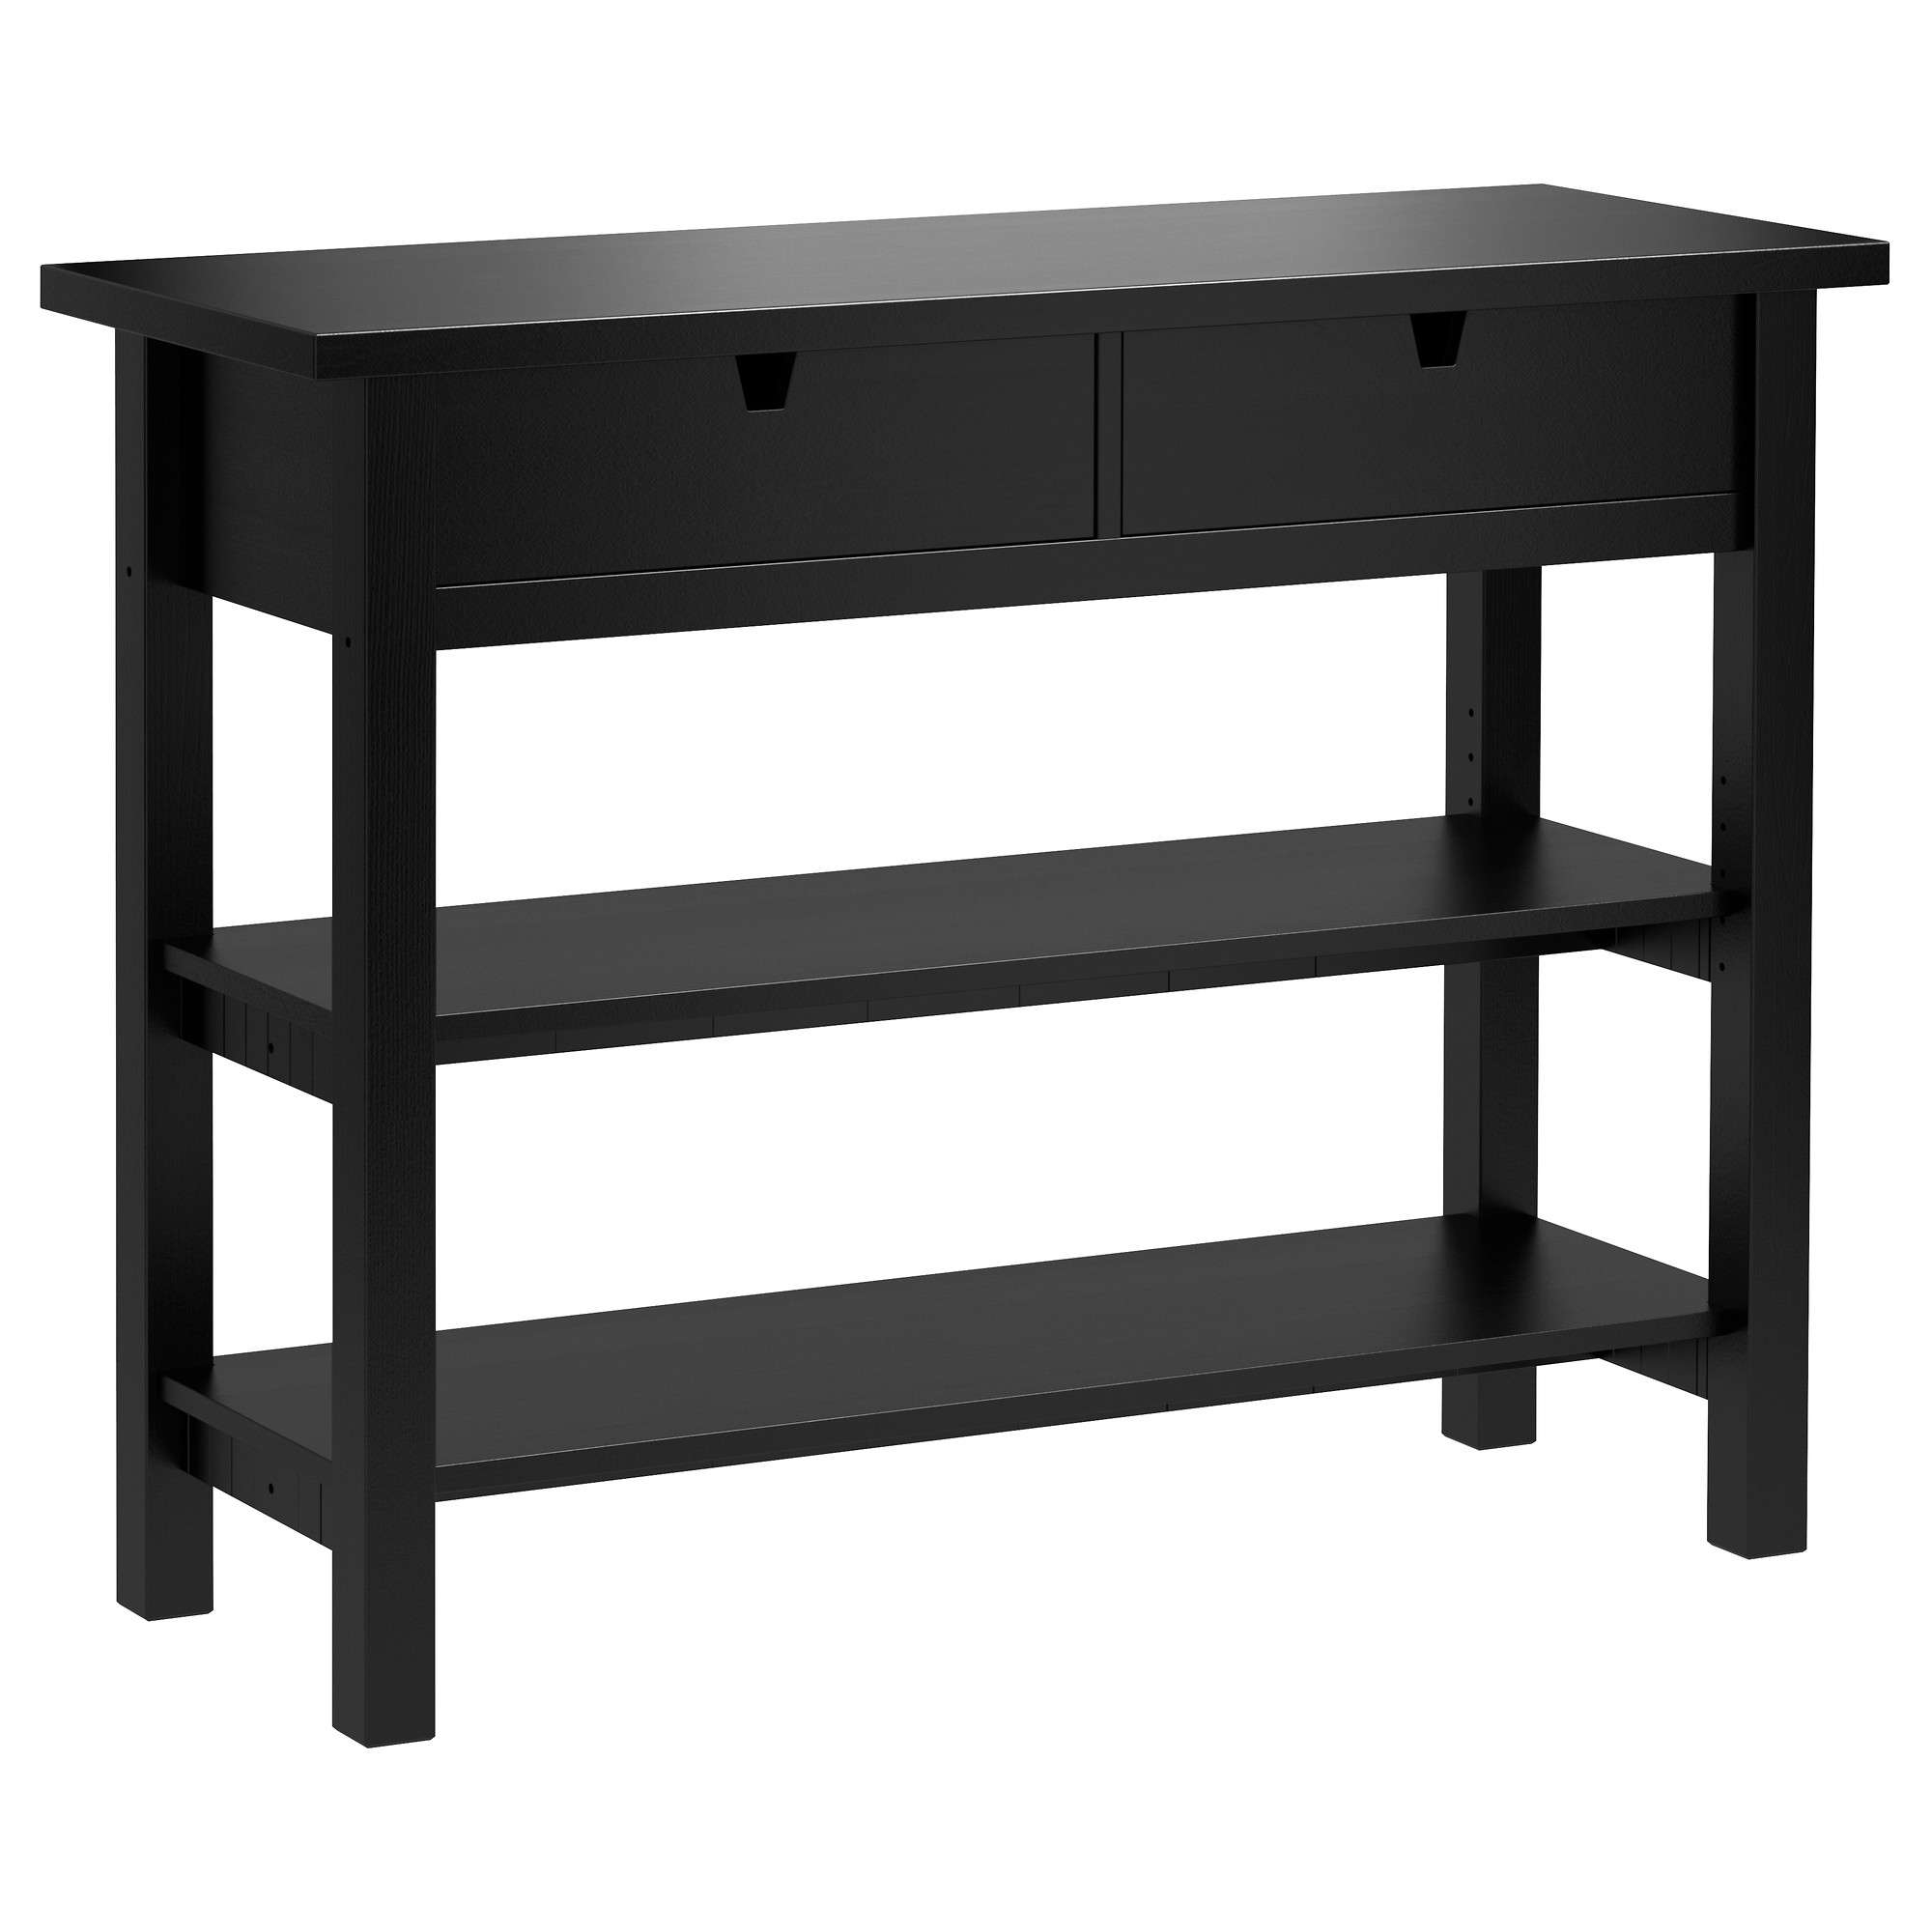 Norden Sideboard – Ikea For Sideboards Tables (View 12 of 20)